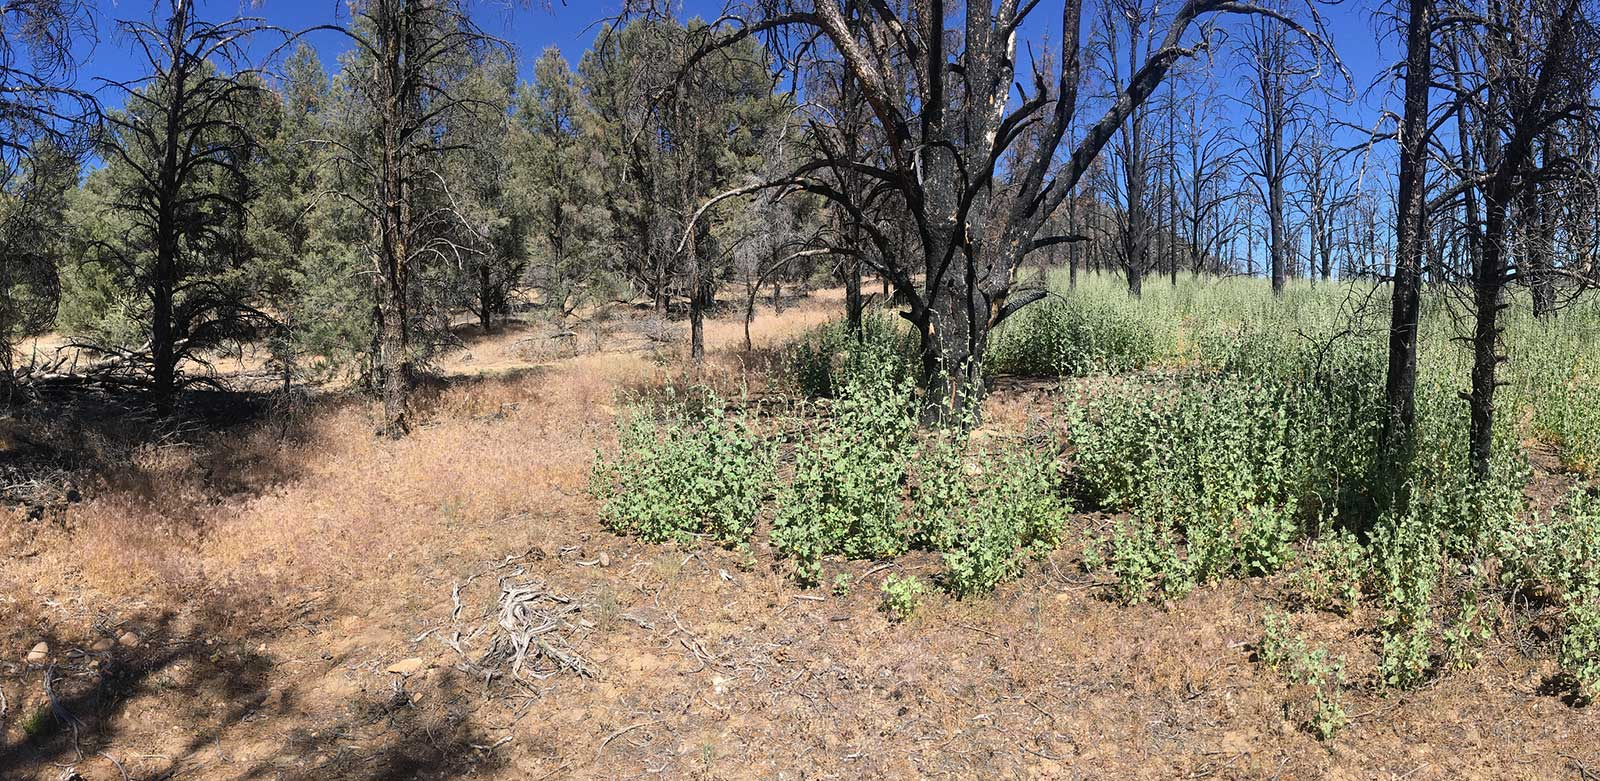 Area where Malacothamnus germinated after fire